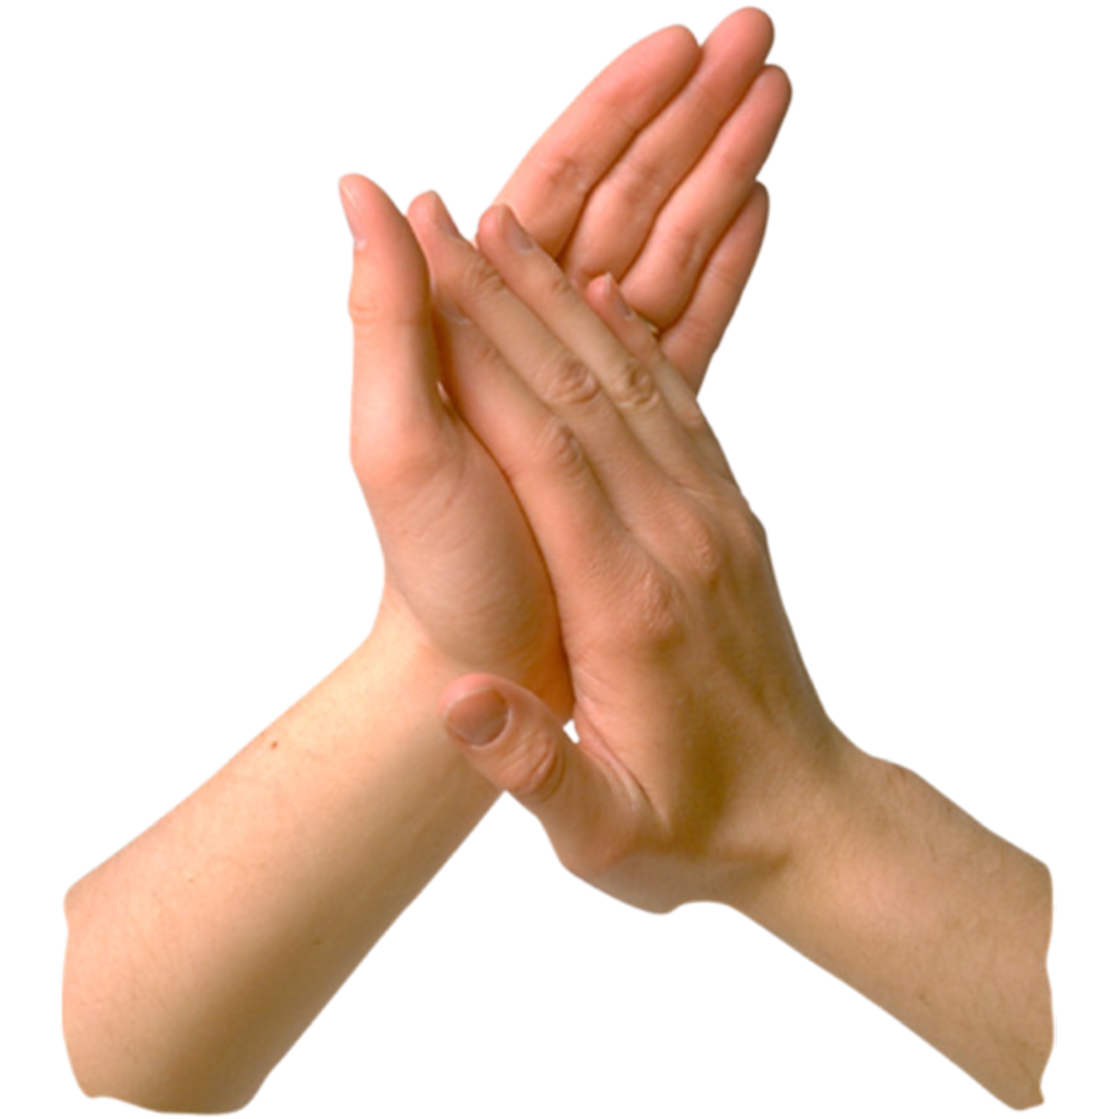 Clapping hands png. Applause hand gesture sound